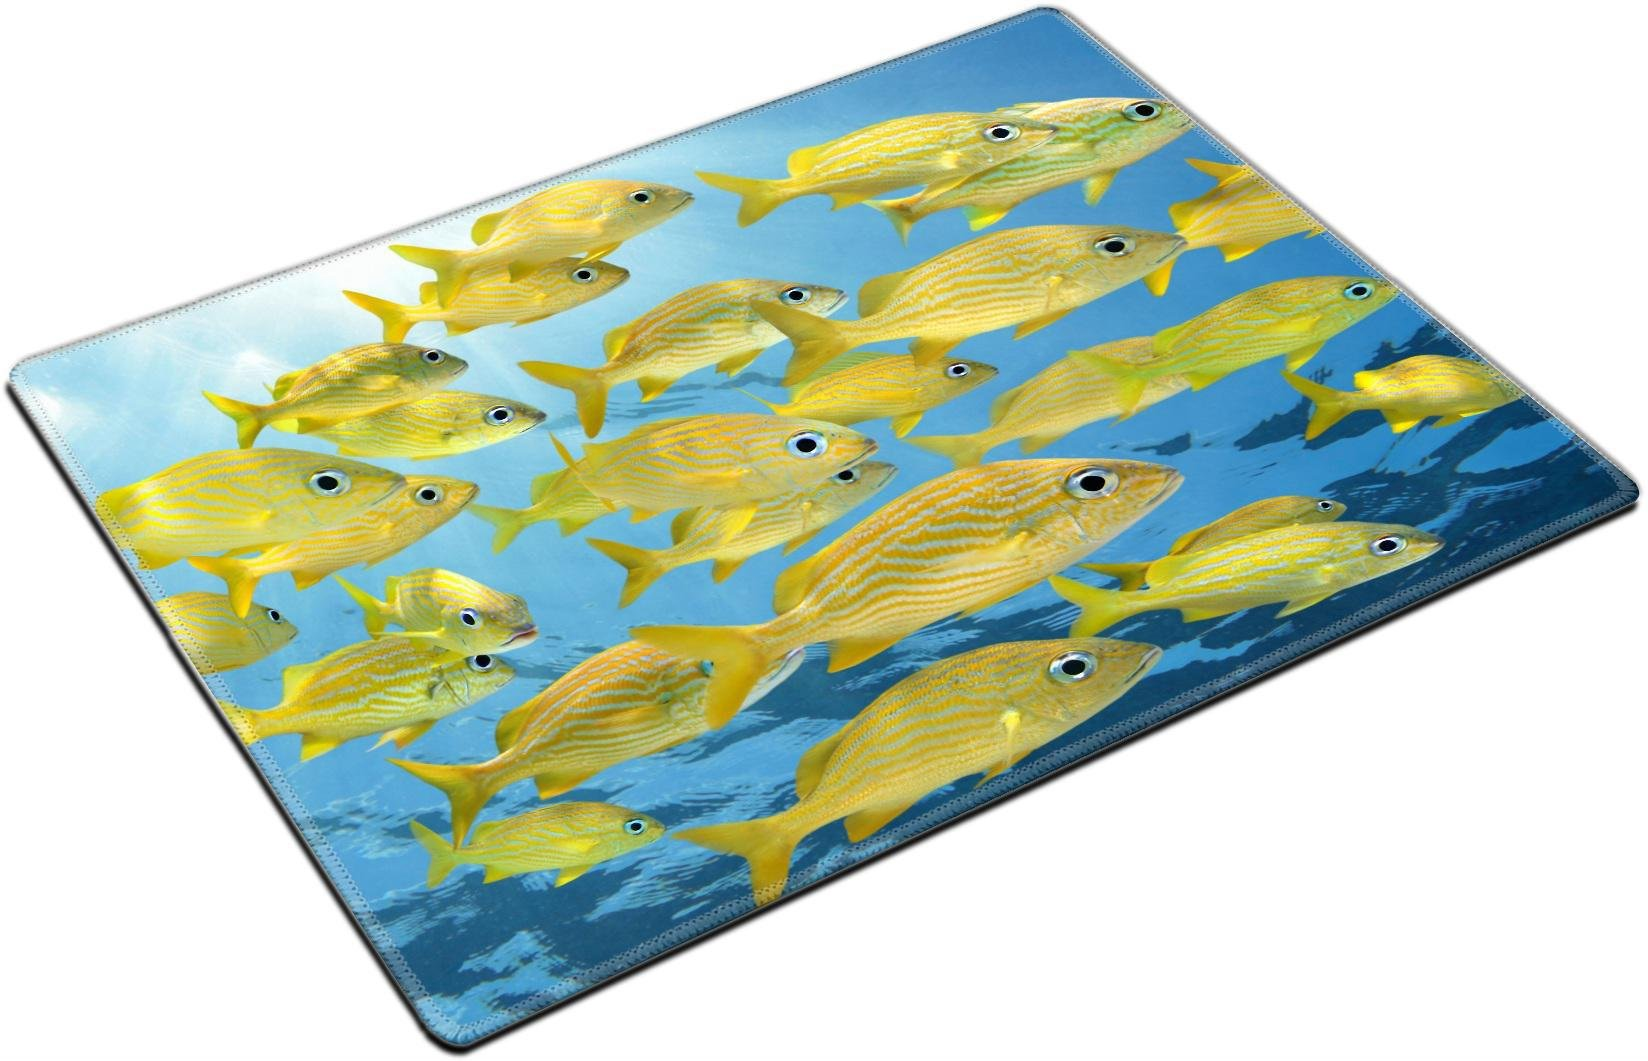 MSD Place Mat Non-Slip Natural Rubber Desk Pads design 34446968 ll School of tropical fish Four eyed Butterflyfish under water surface Caribbean sea